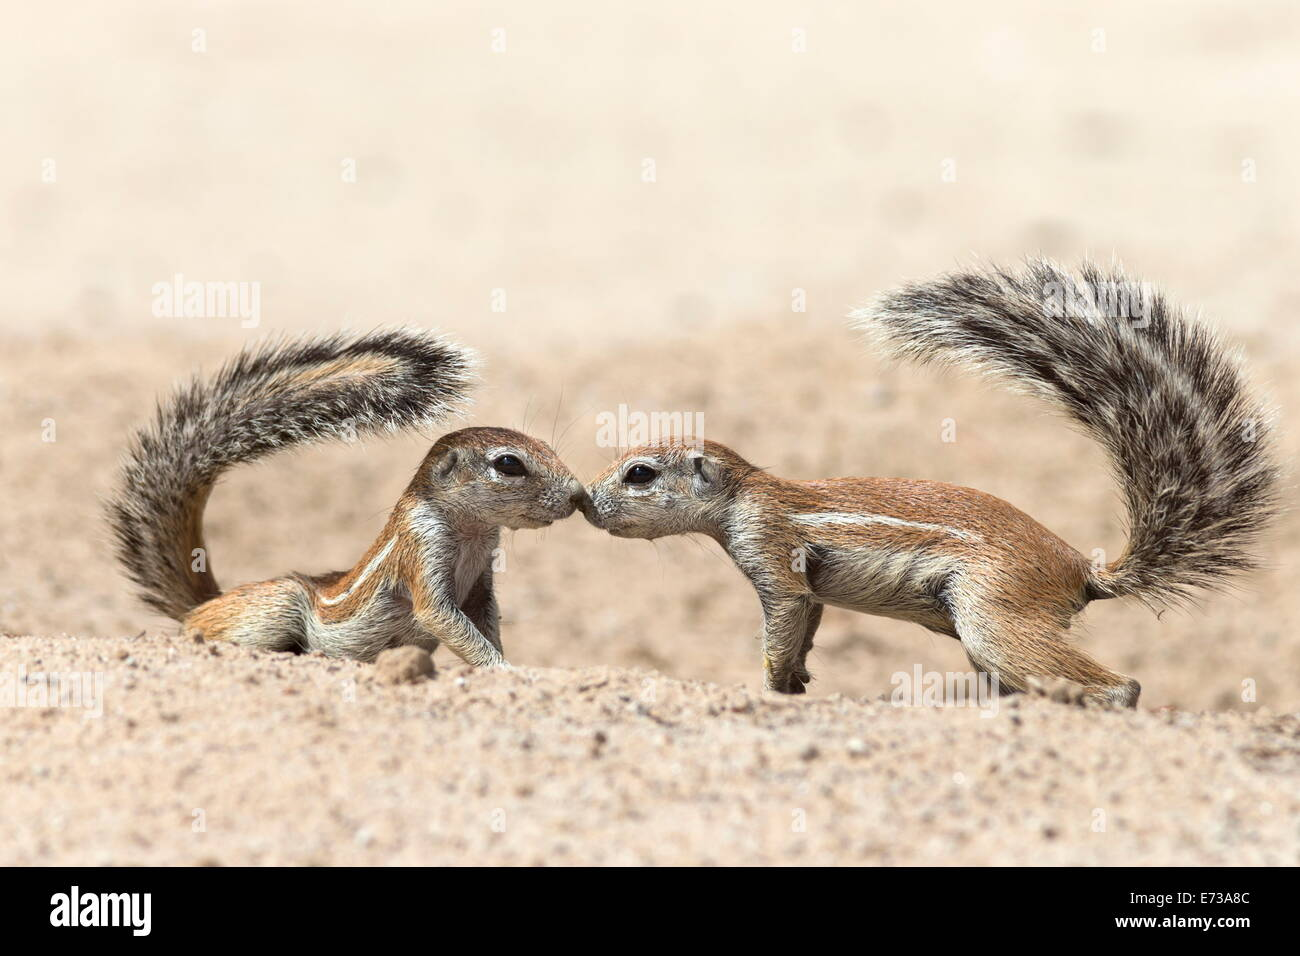 Ground squirrels (Xerus inauris) greeting, Kgalagadi Transfrontier Park, Northern Cape, South Africa, Africa - Stock Image